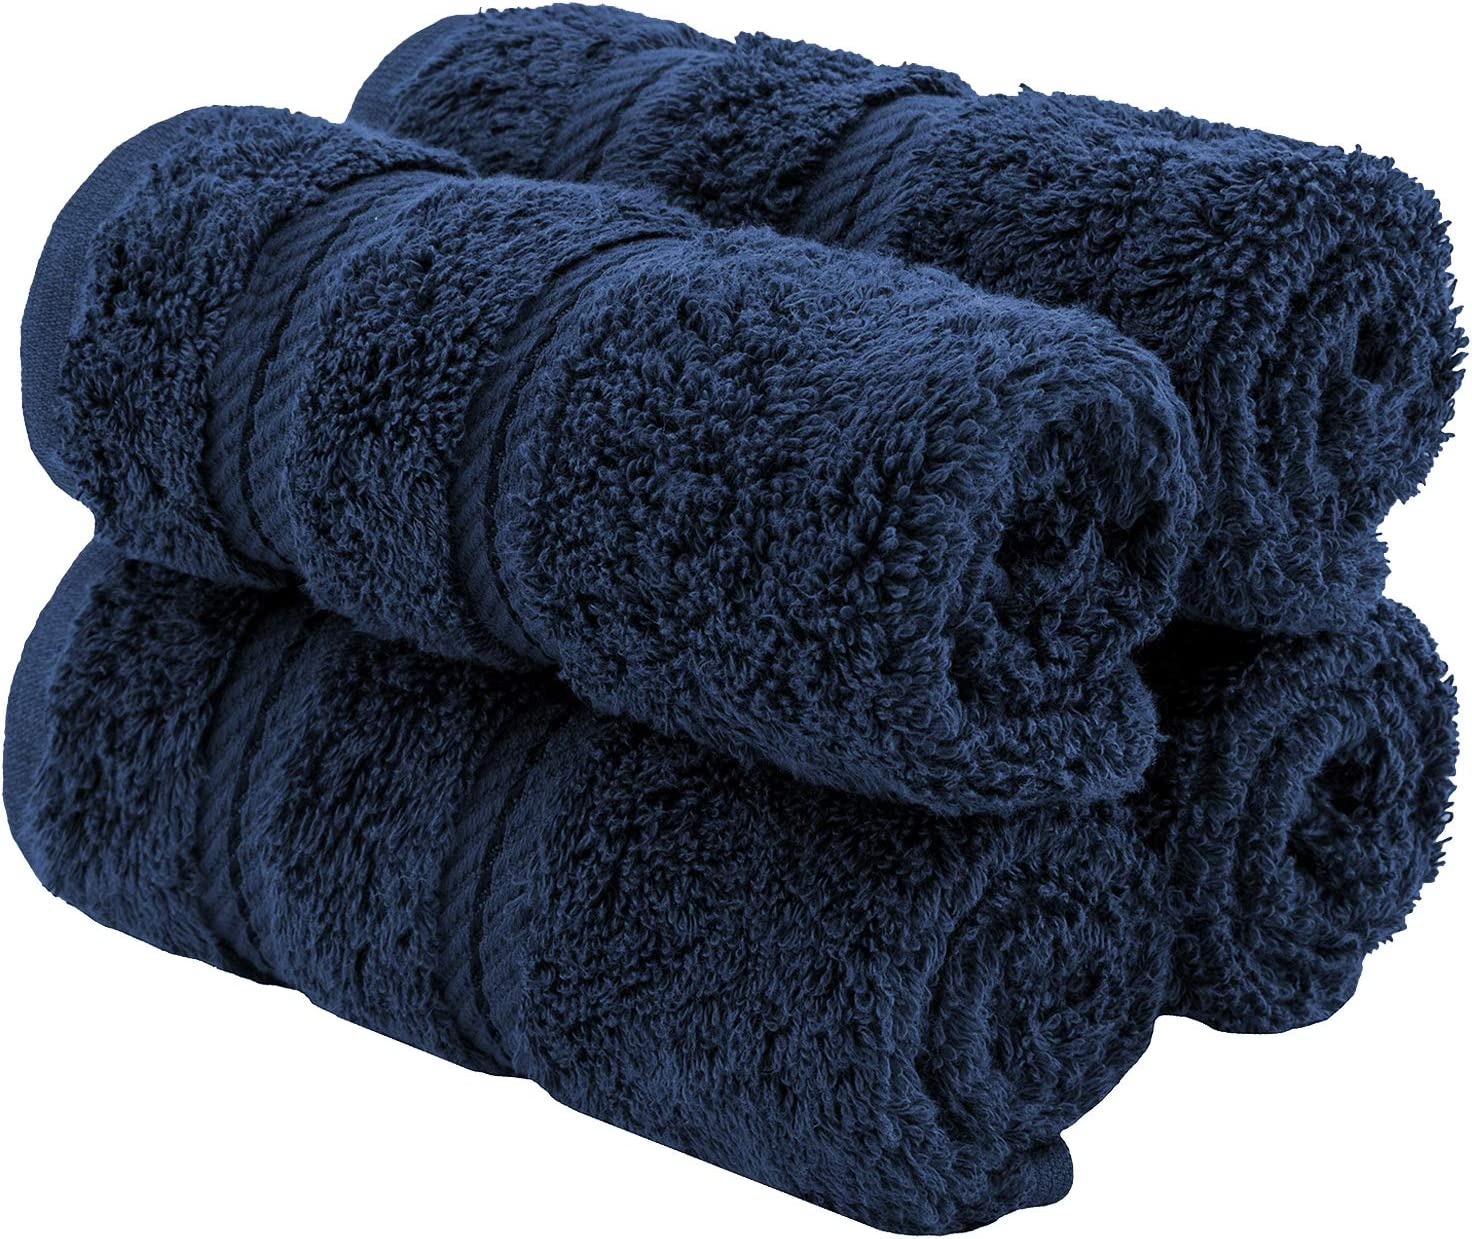 American Soft Linen Premium Turkish Genuine Cotton, Luxury Hotel Quality for Maximum Softness & Absorbency for Face, Hand, Kitchen & Cleaning (4-Piece Washcloth Set, Navy Blue)